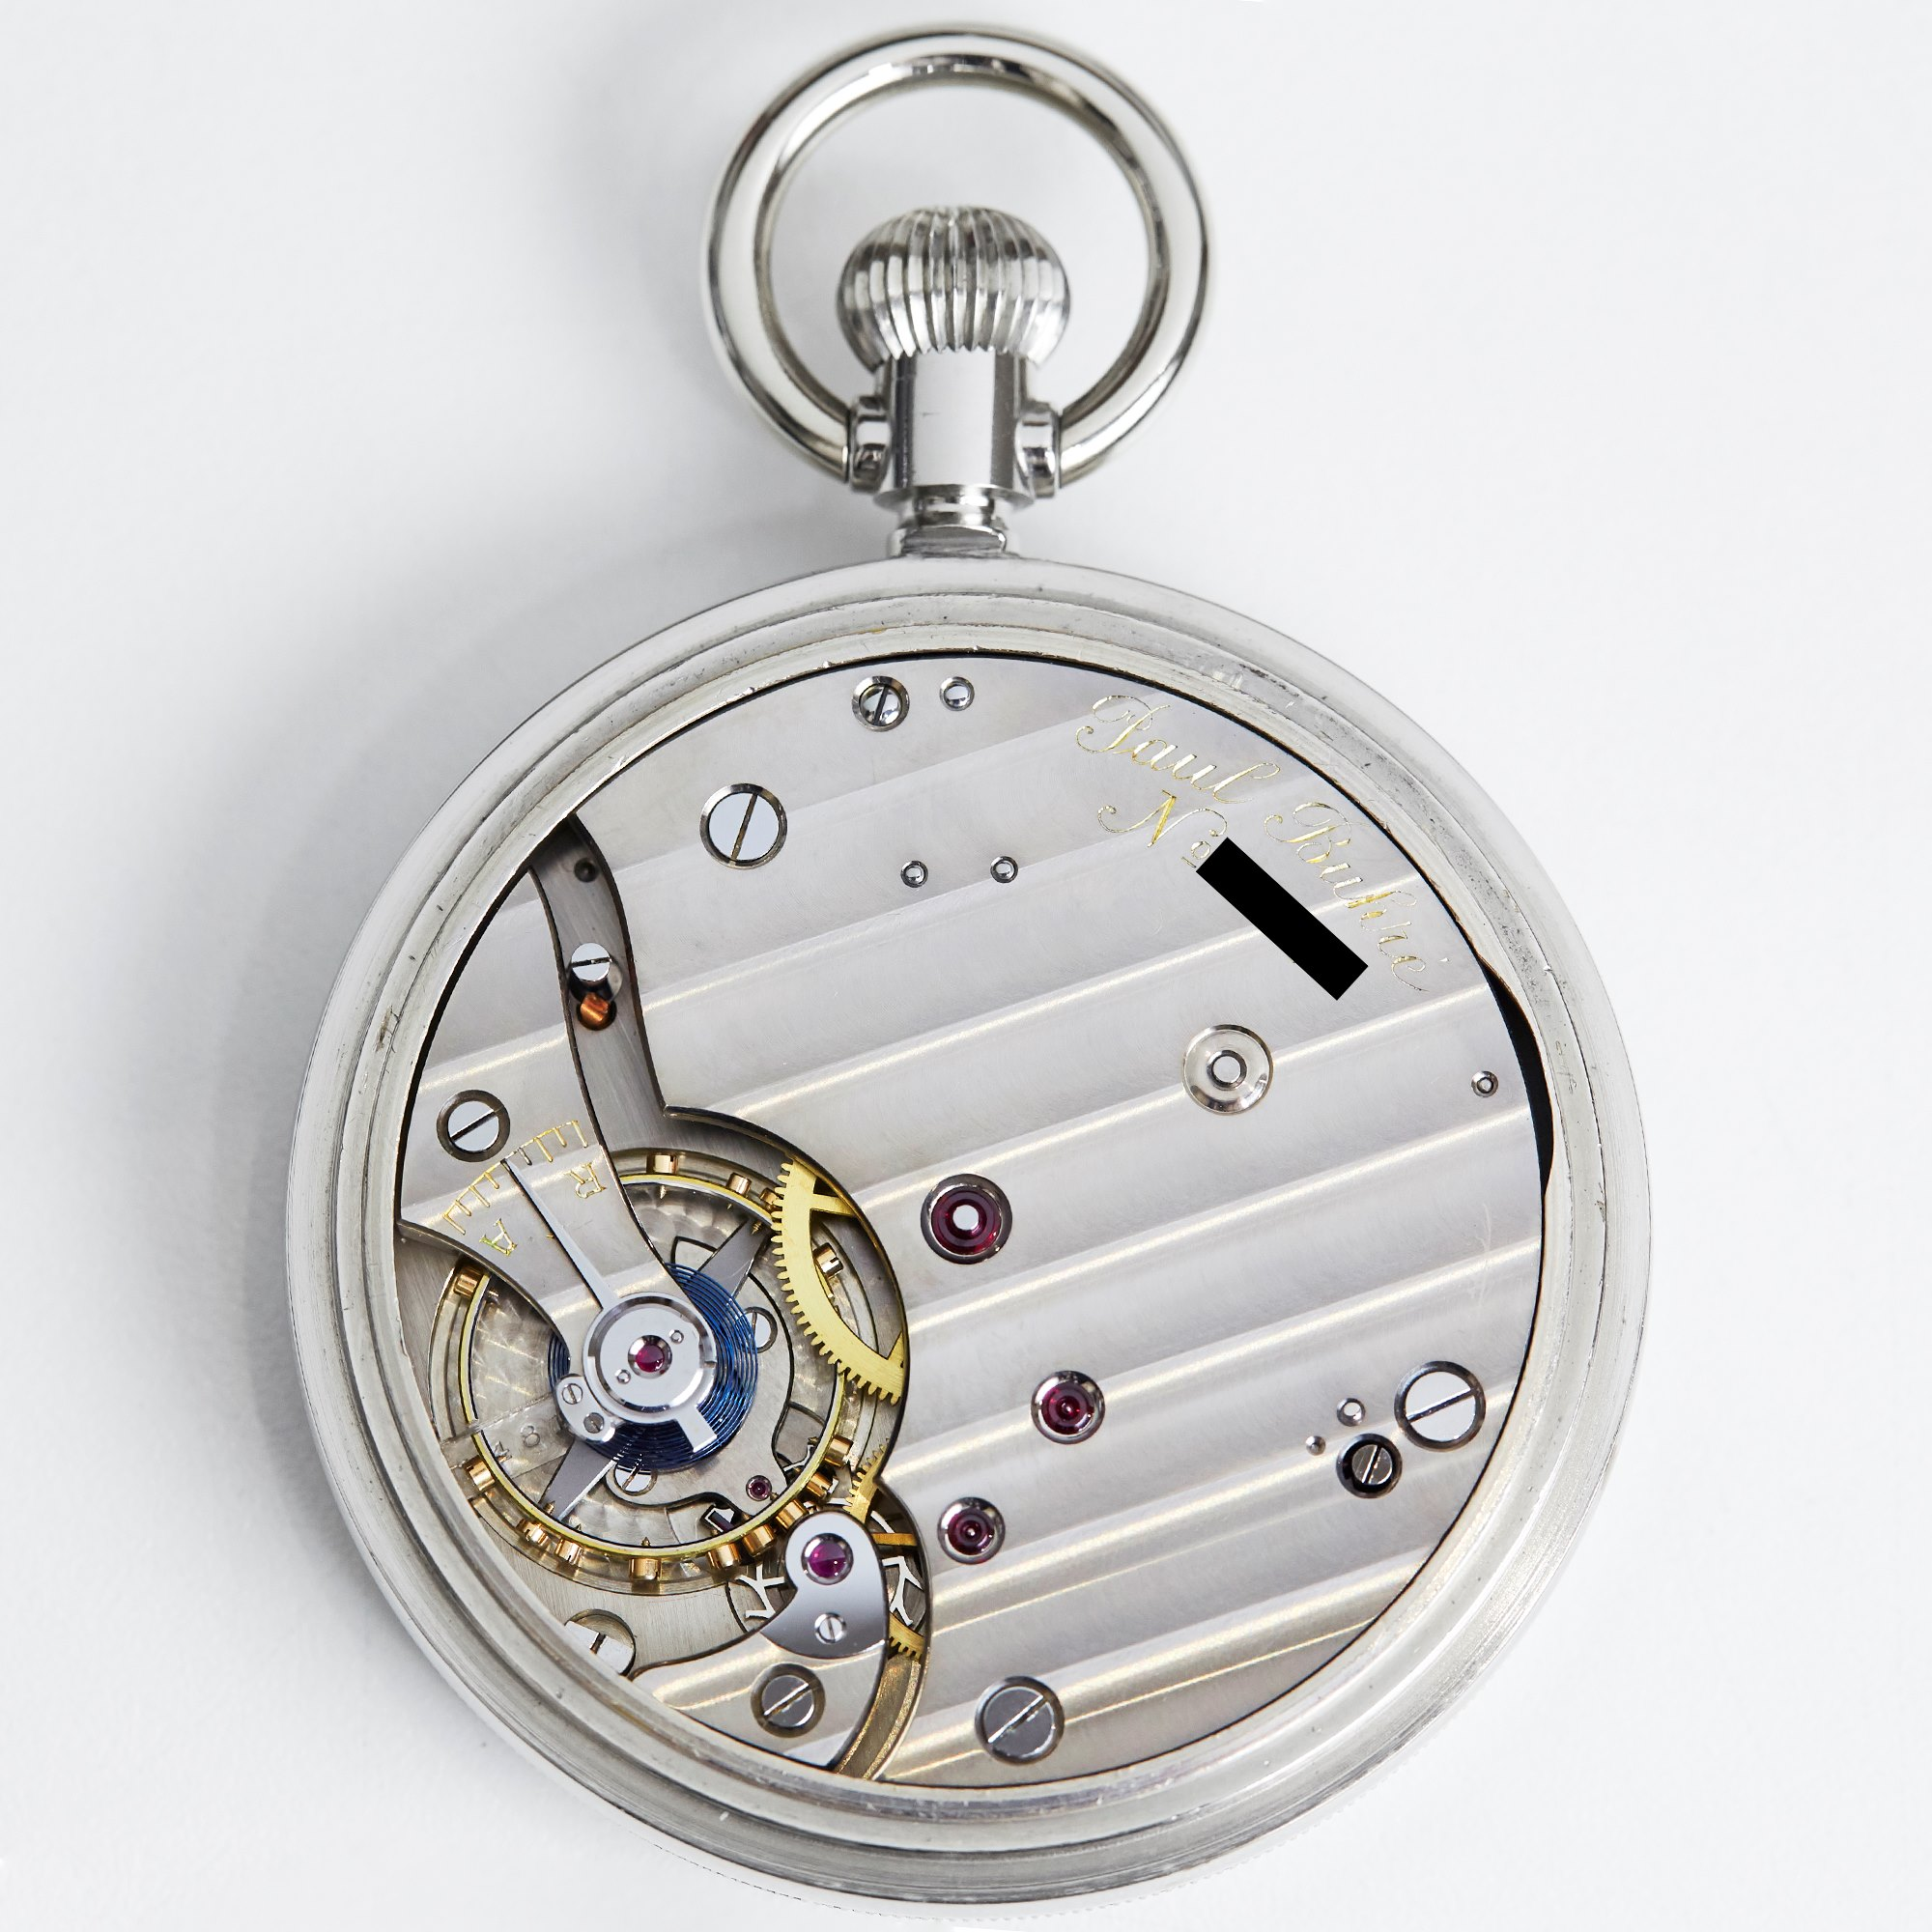 Paul Buhre Paul Buhre Deck Watch Stainless Steel